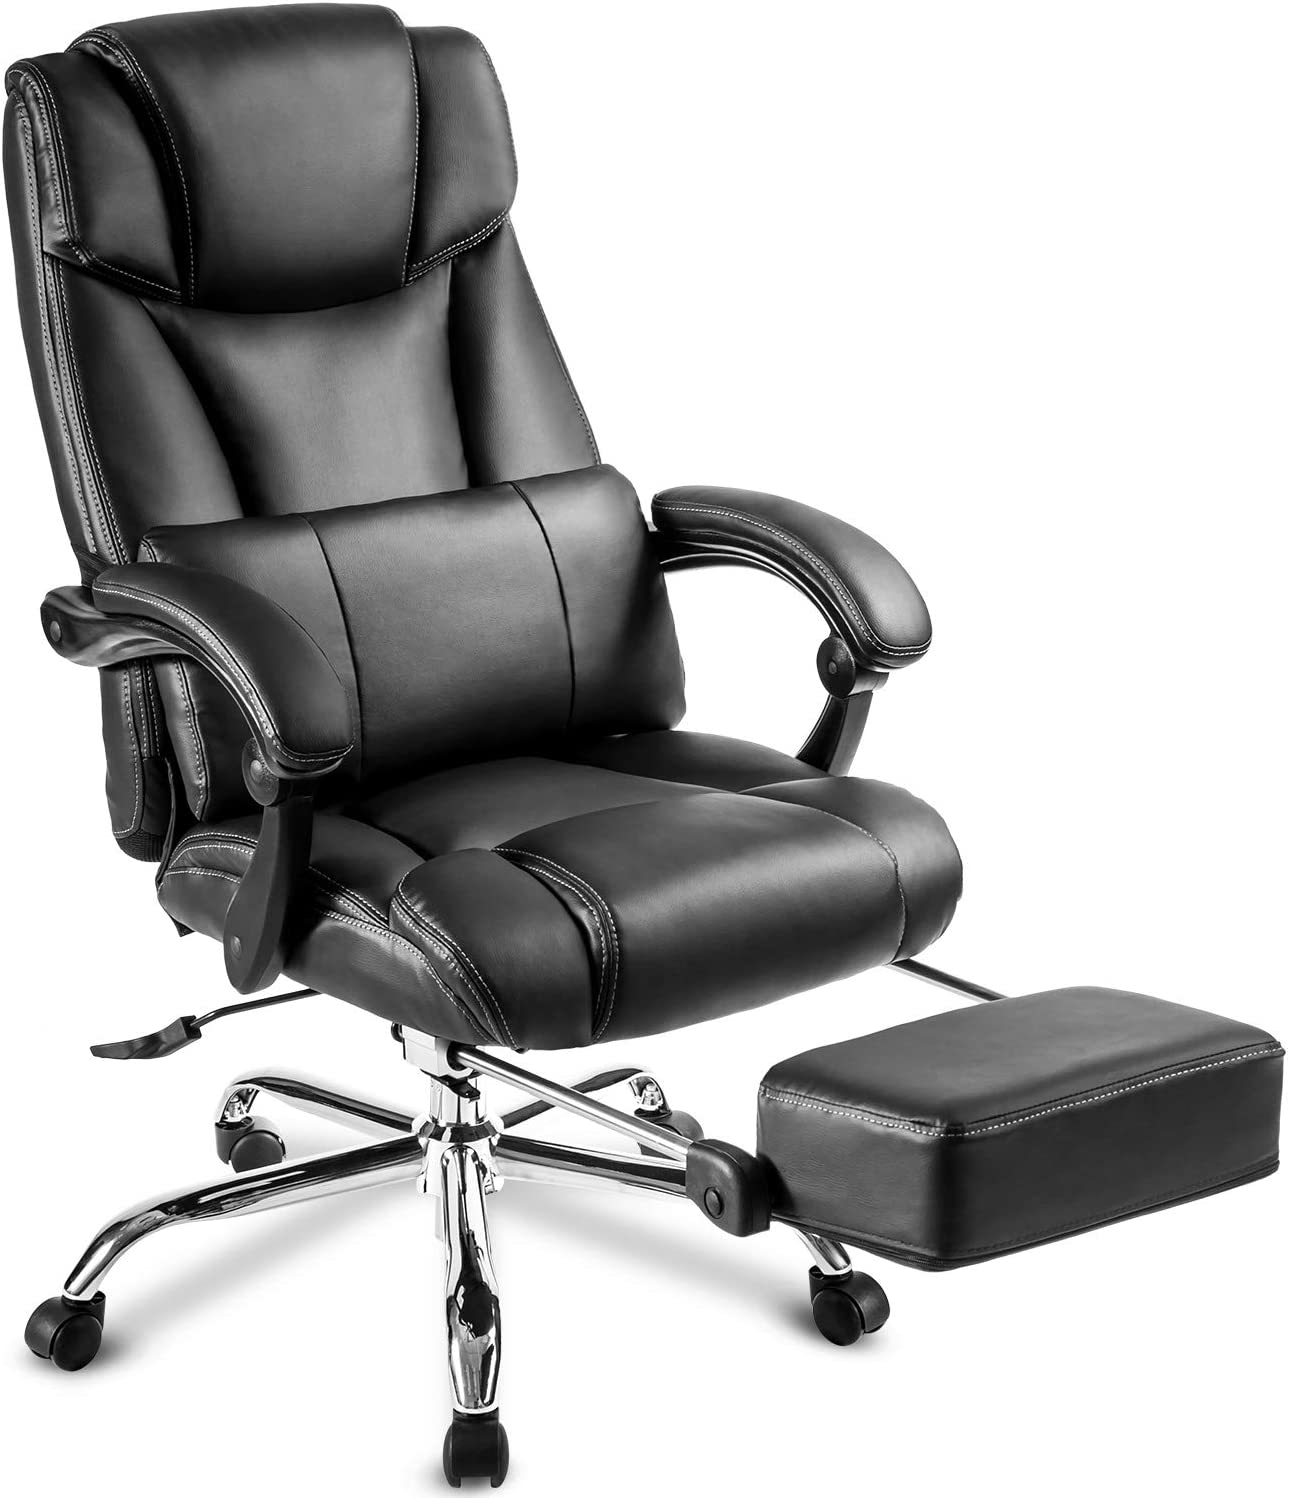 170 Degree Reclining Ergonomic Office Chair,JULYFOX Adjustable High Back Gaming Chair with Footrest Remover Lumbar Support Computer Executive Leather Chair Heavy Duty